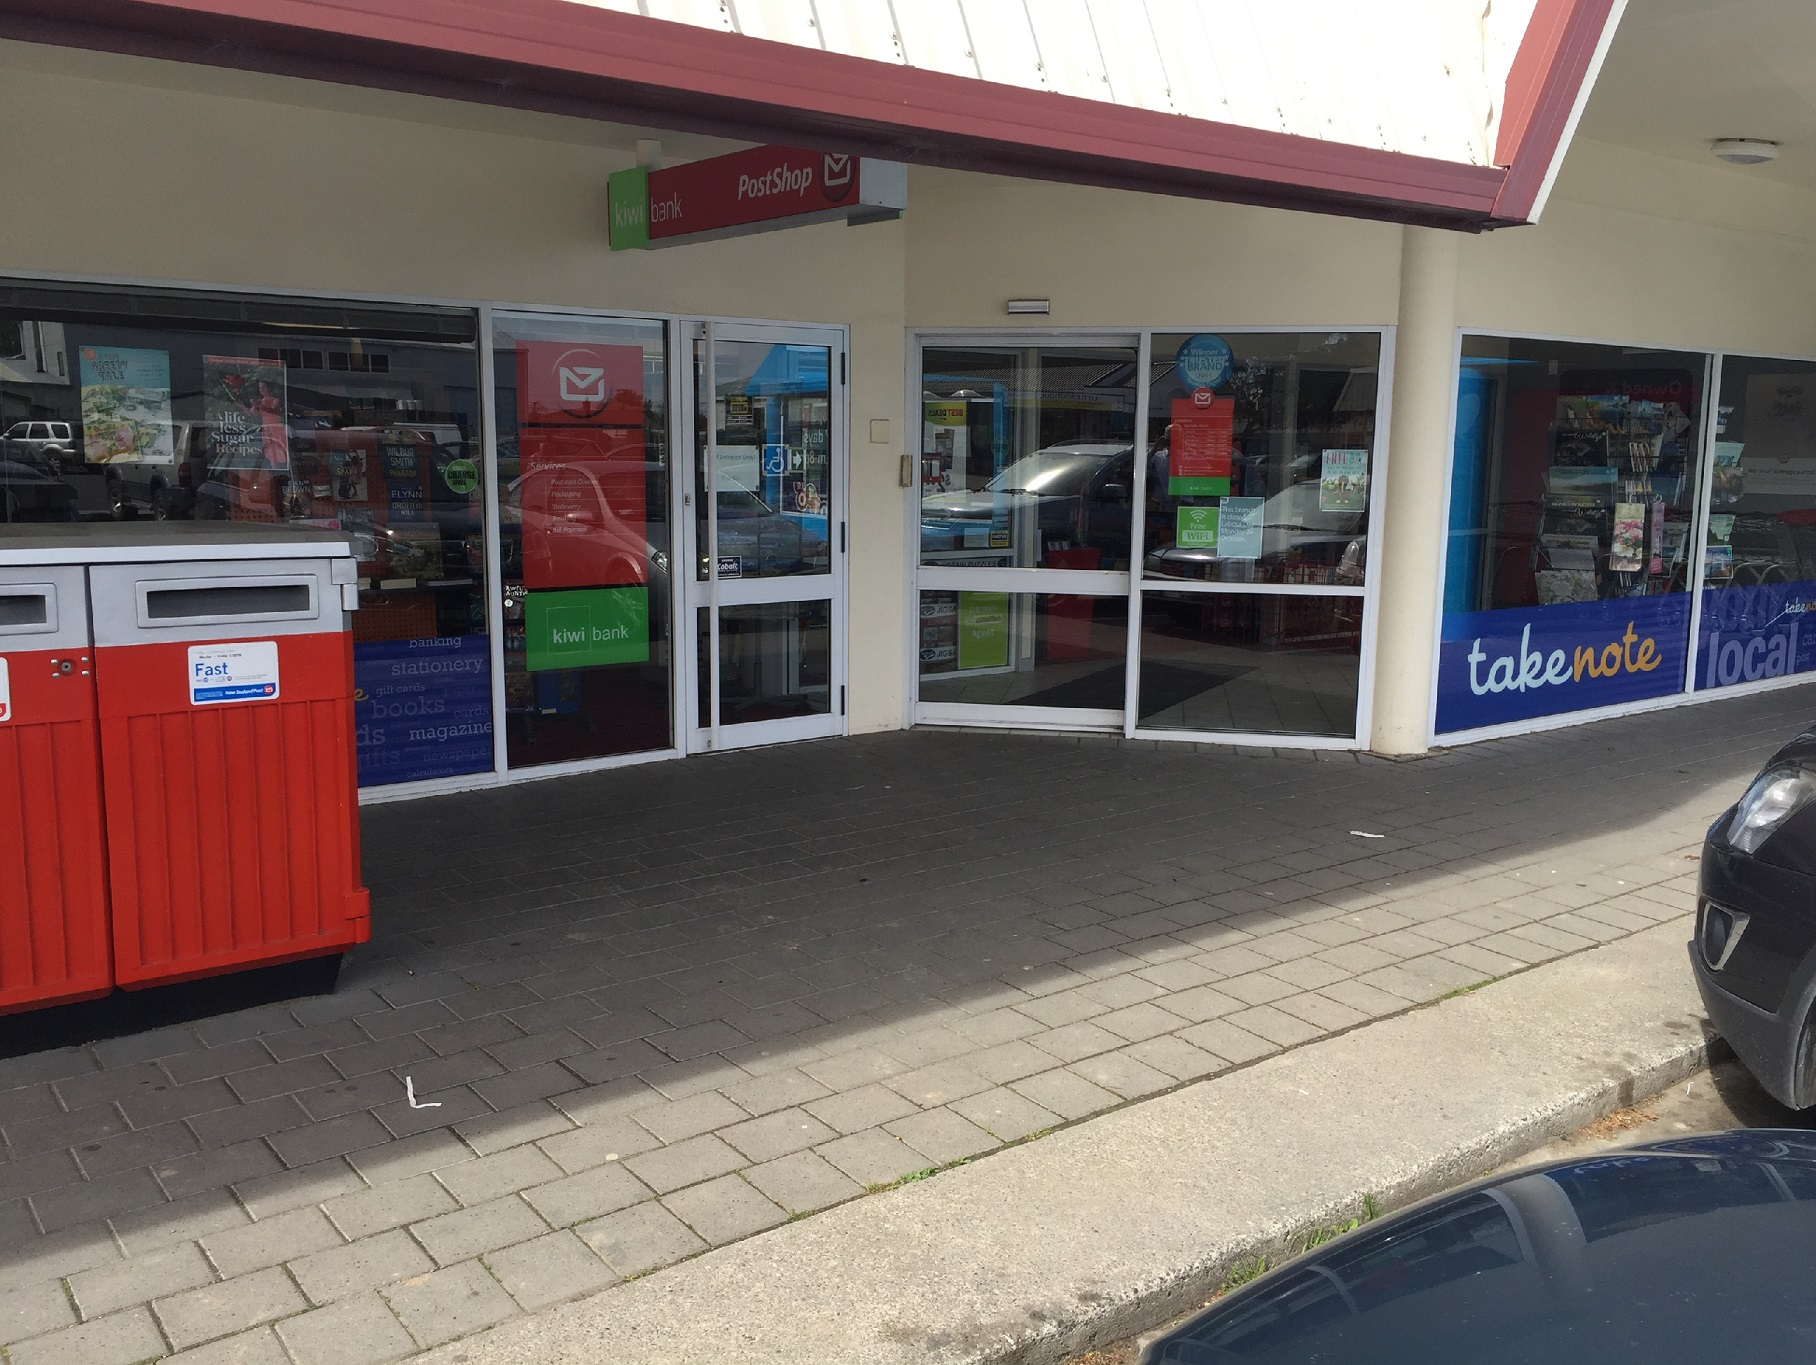 Stationery and Postal Kiwi Bank Business for Sale Christchurch Area